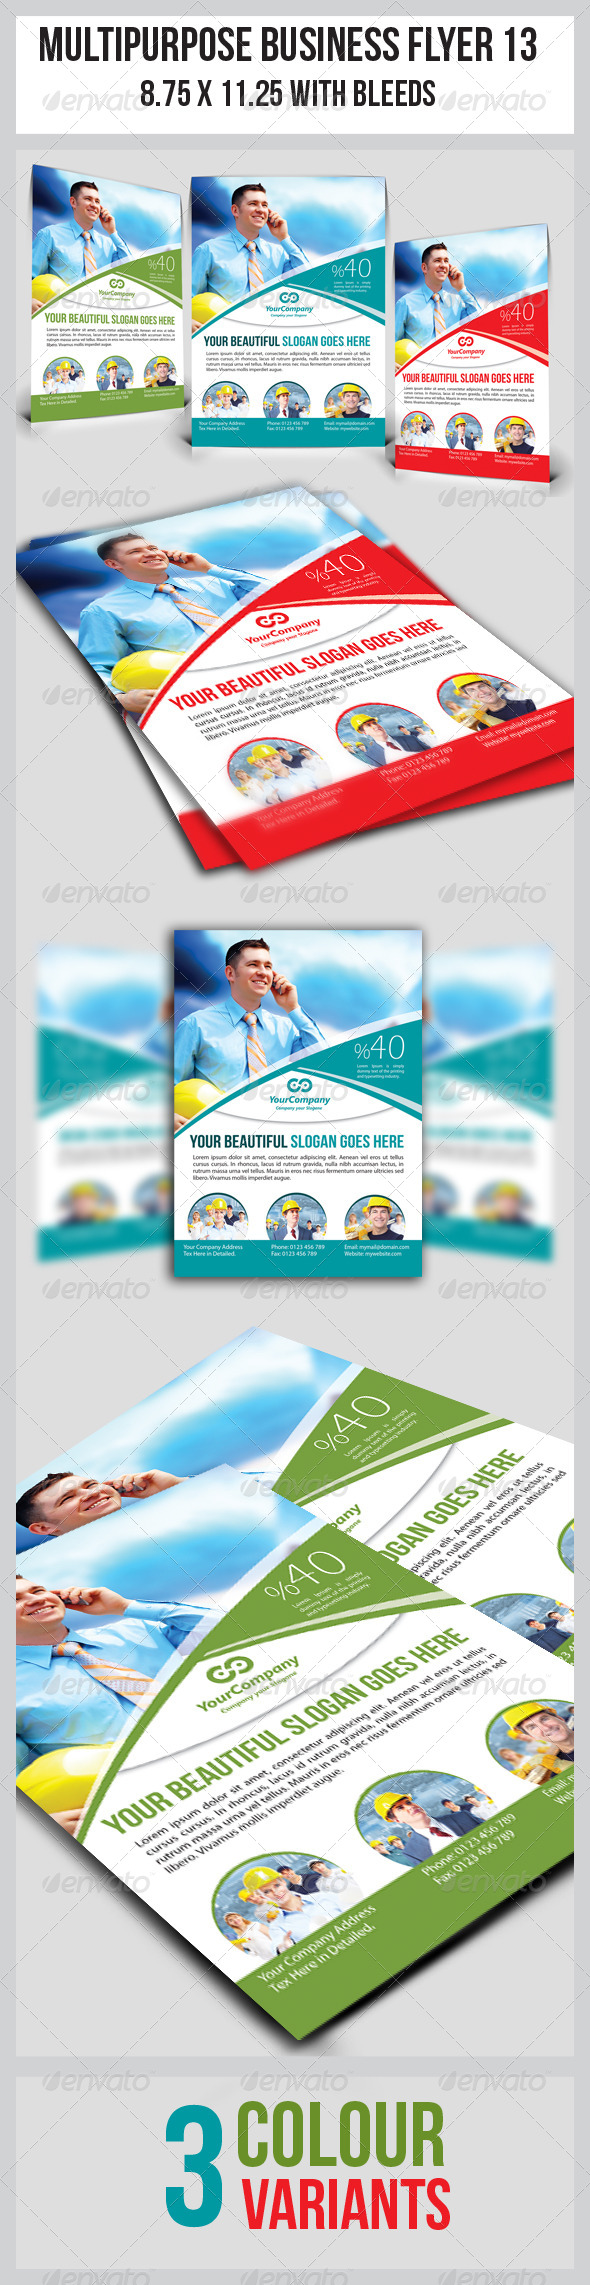  Multipurpose Business Flyer 13 - Corporate Flyers